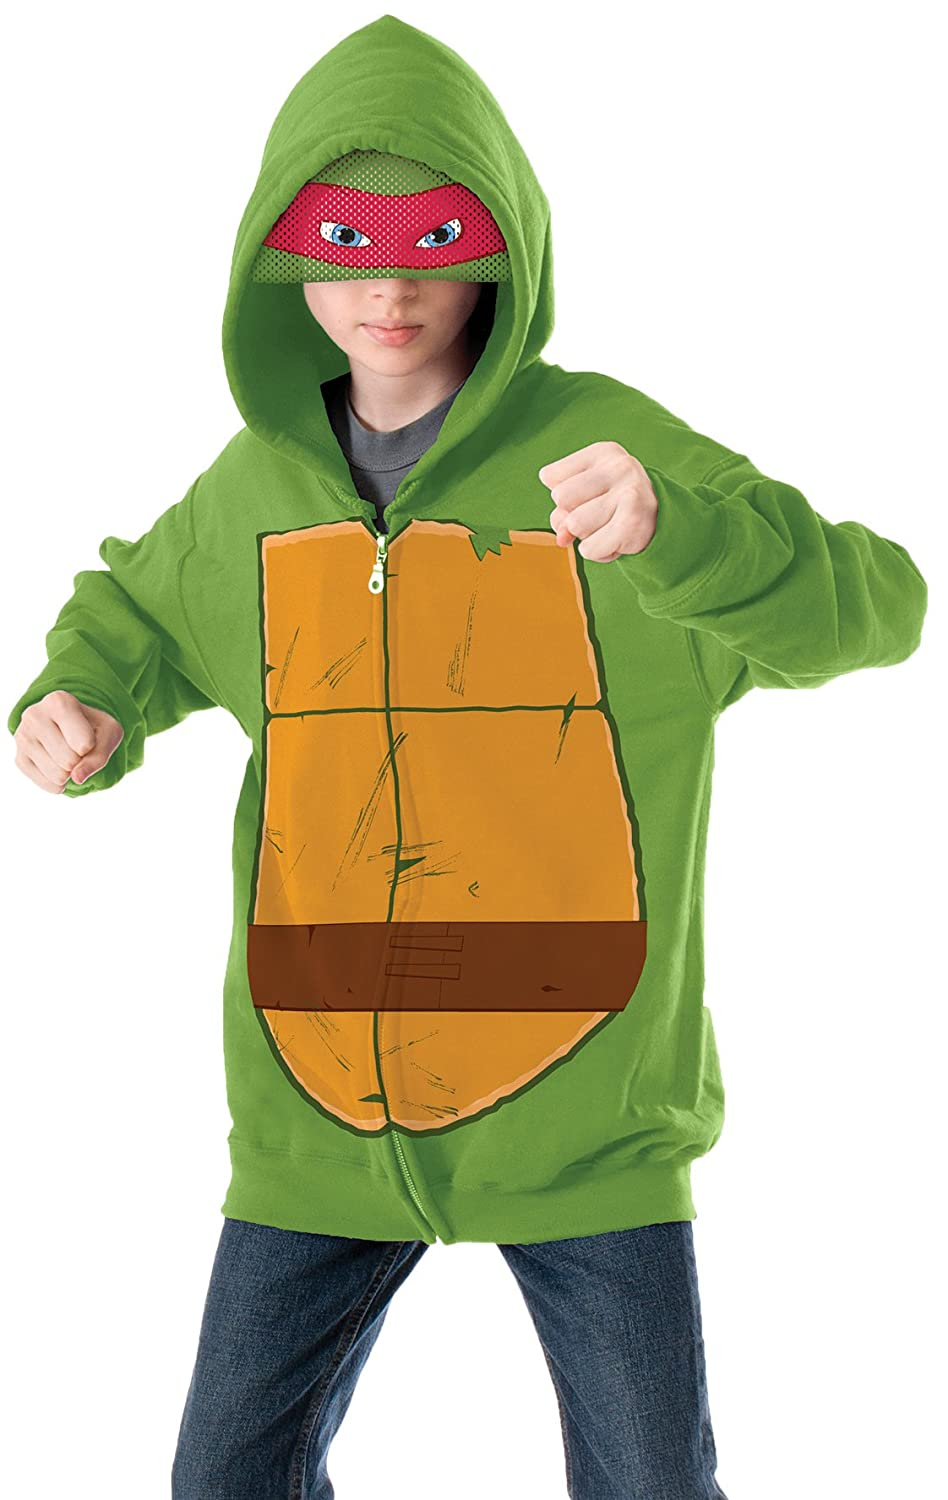 Amazon.com Teenage Mutant Ninja Turtles Raphael Hoodie Costume Small Toys u0026 Games  sc 1 st  Amazon.com & Amazon.com: Teenage Mutant Ninja Turtles Raphael Hoodie Costume ...